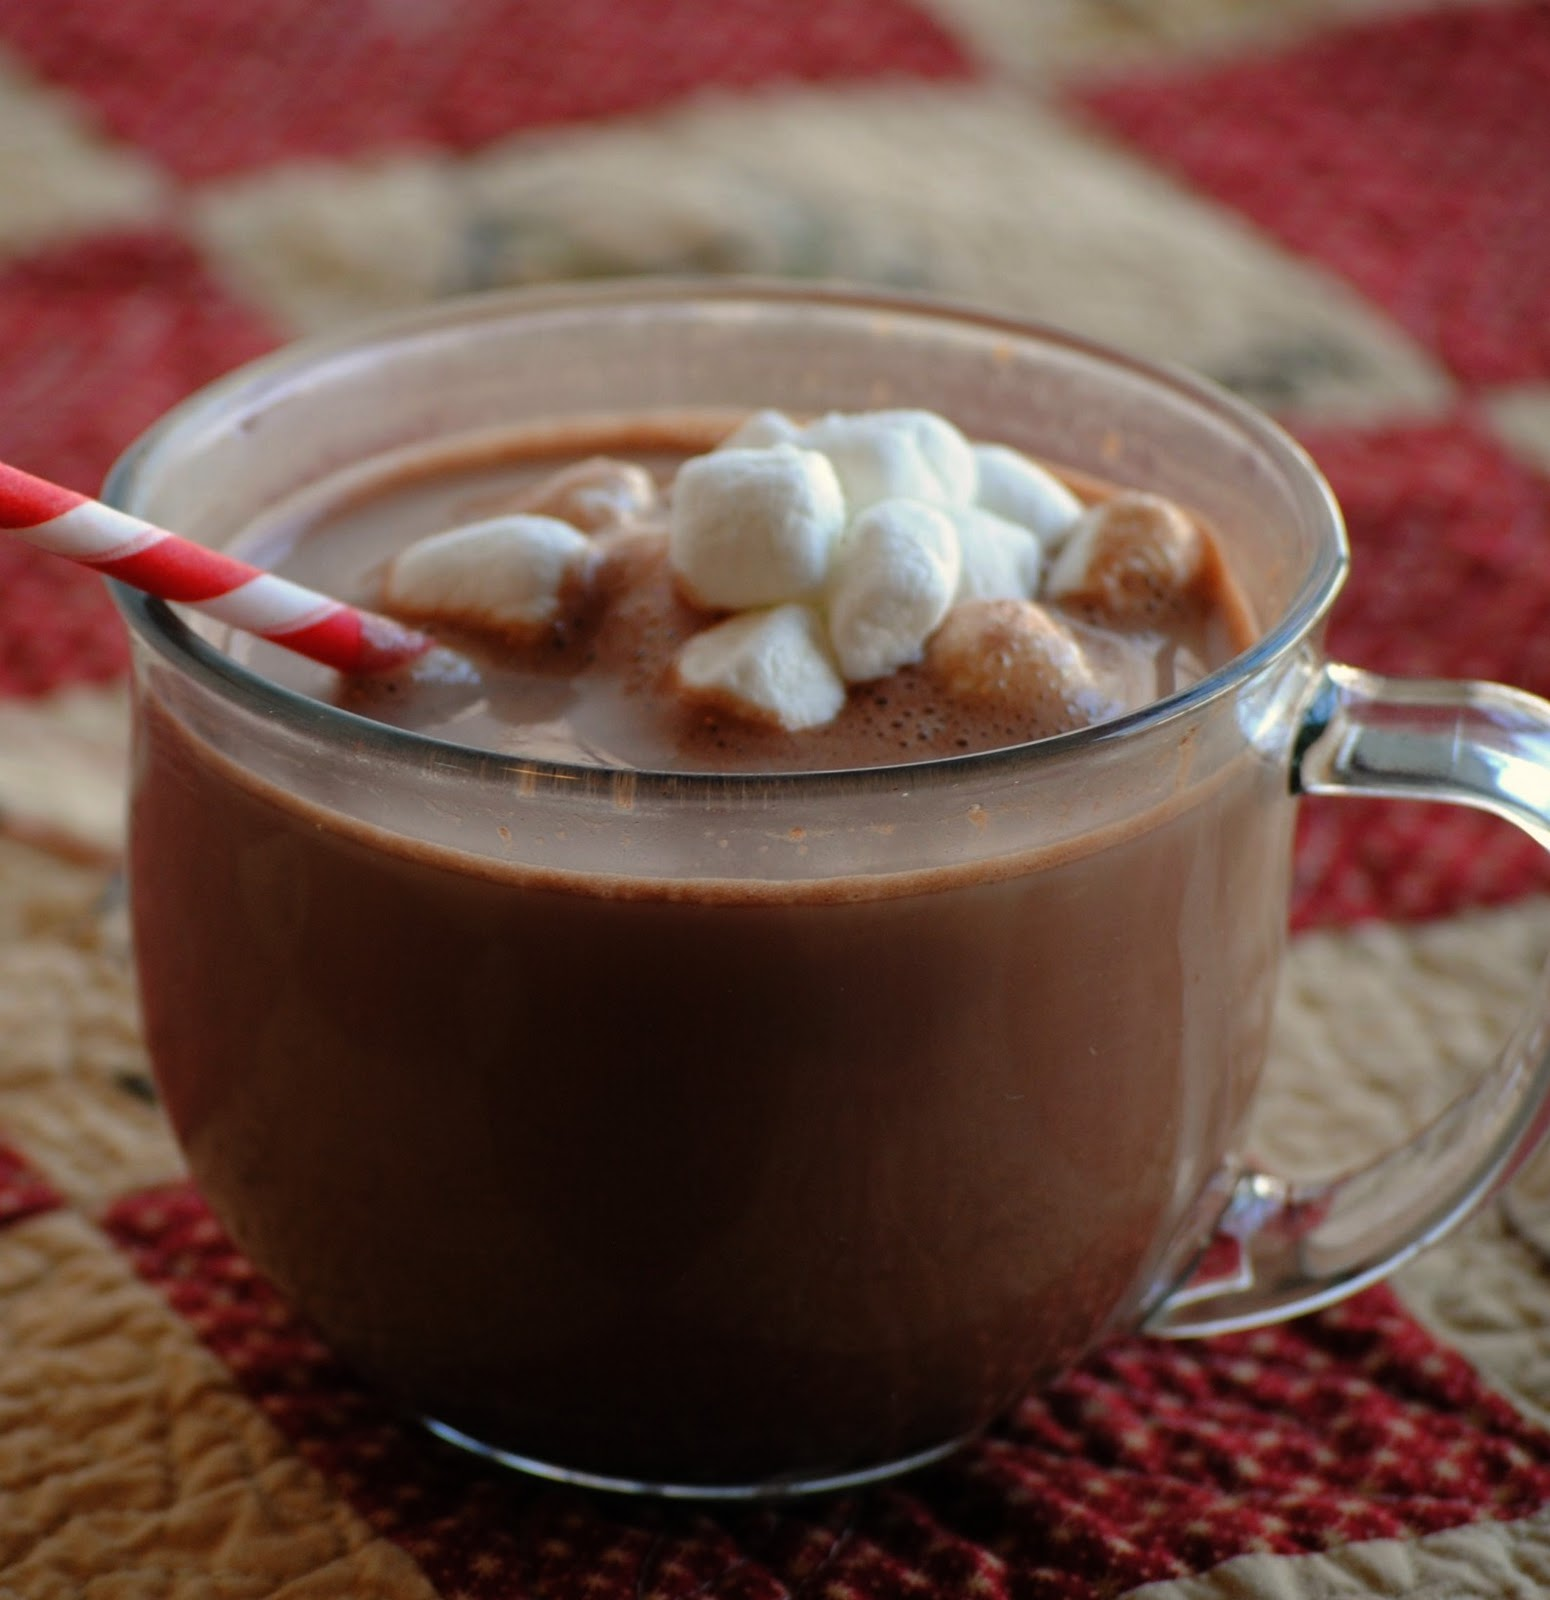 Homemade Hot Chocolate Mix With White Chocolate Chips